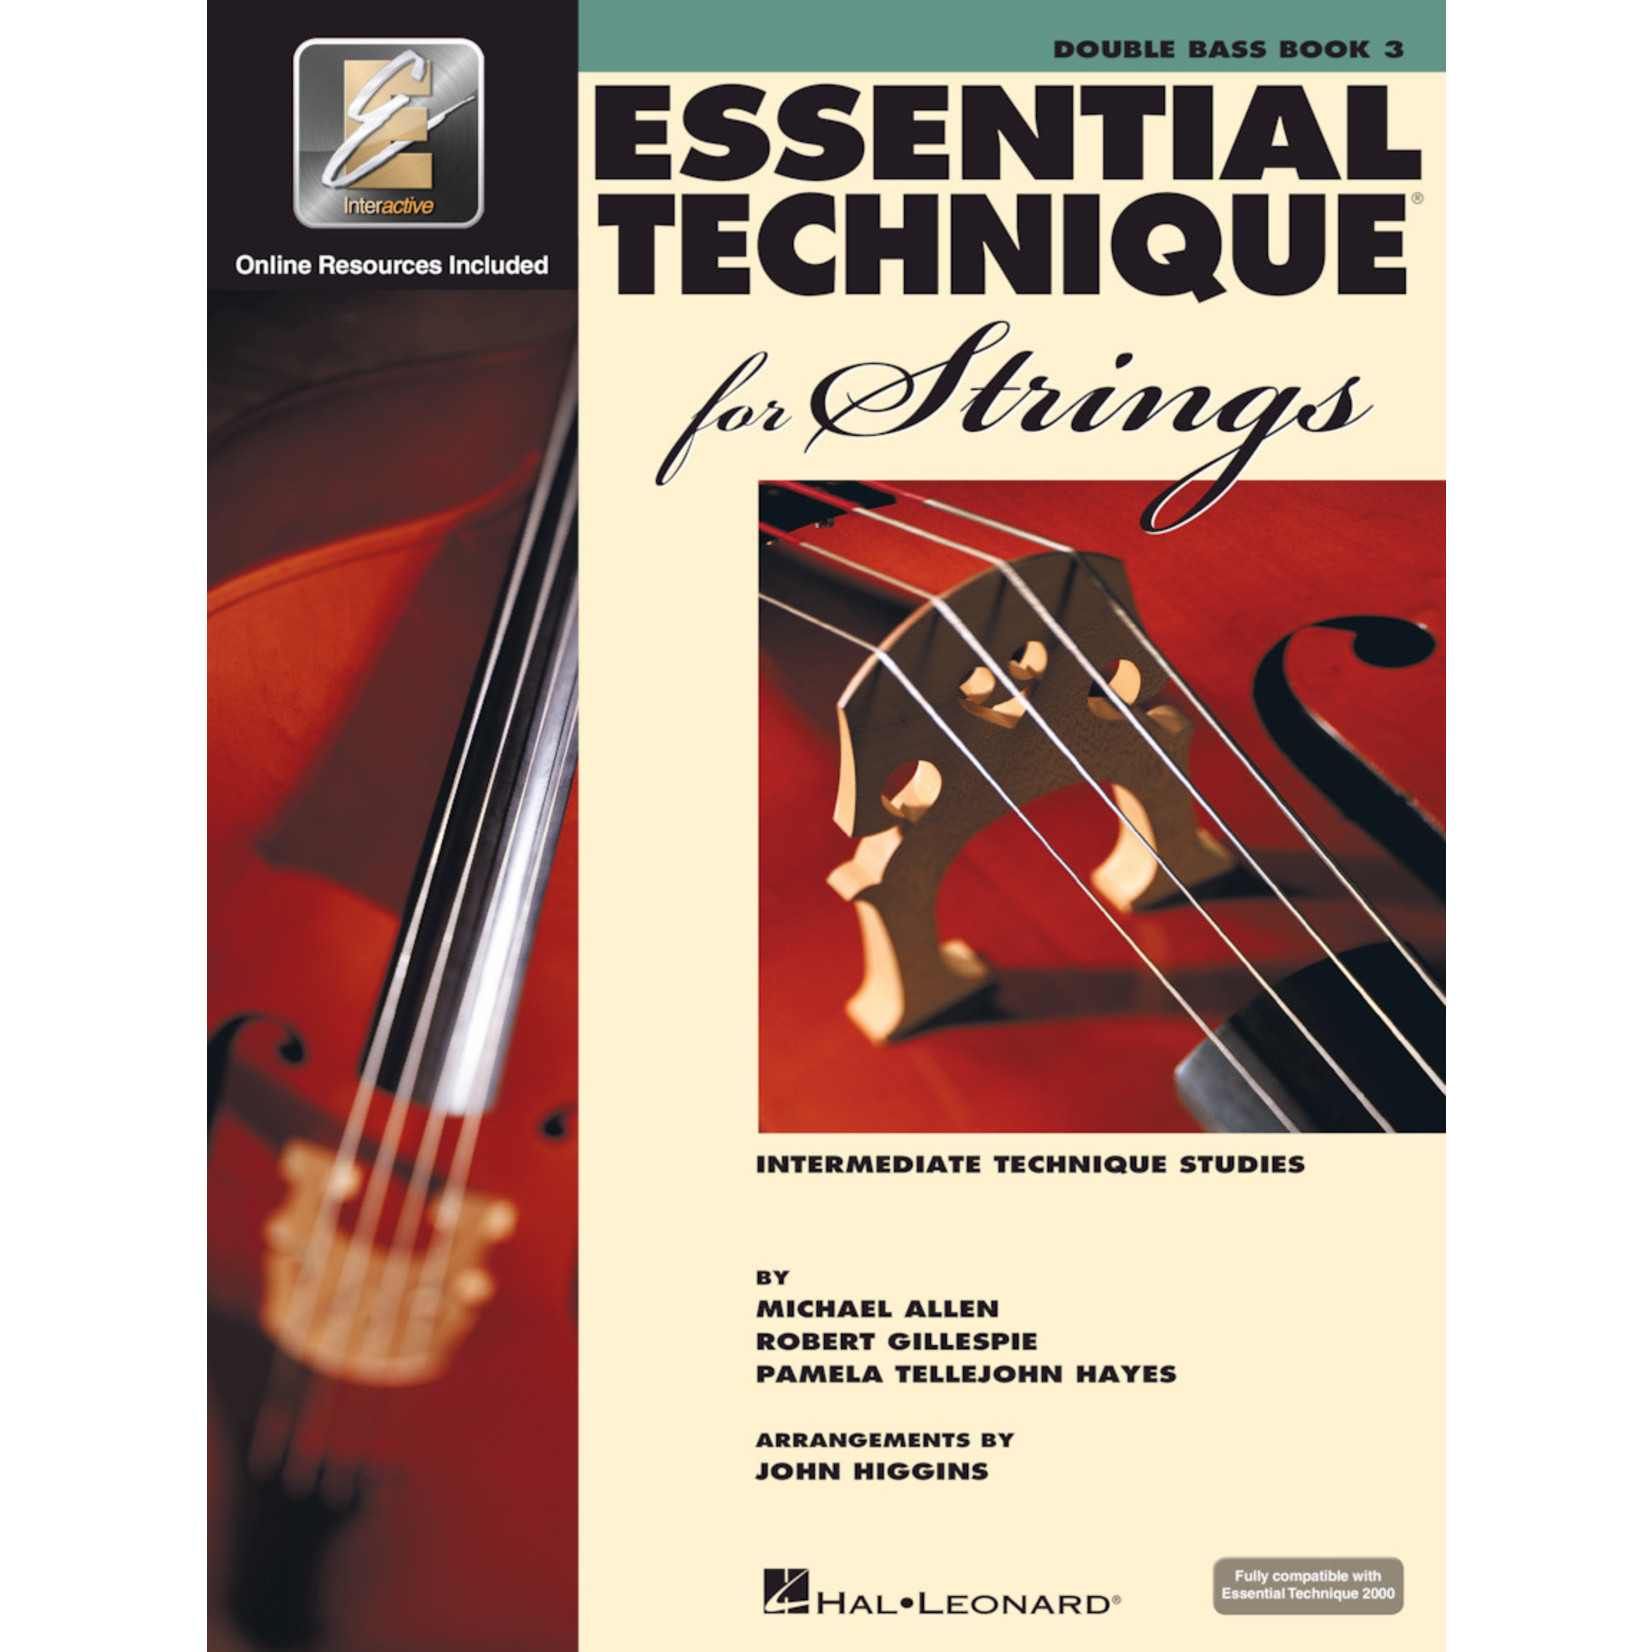 Hal Leonard Essential Technique for Strings Double Bass Book 3